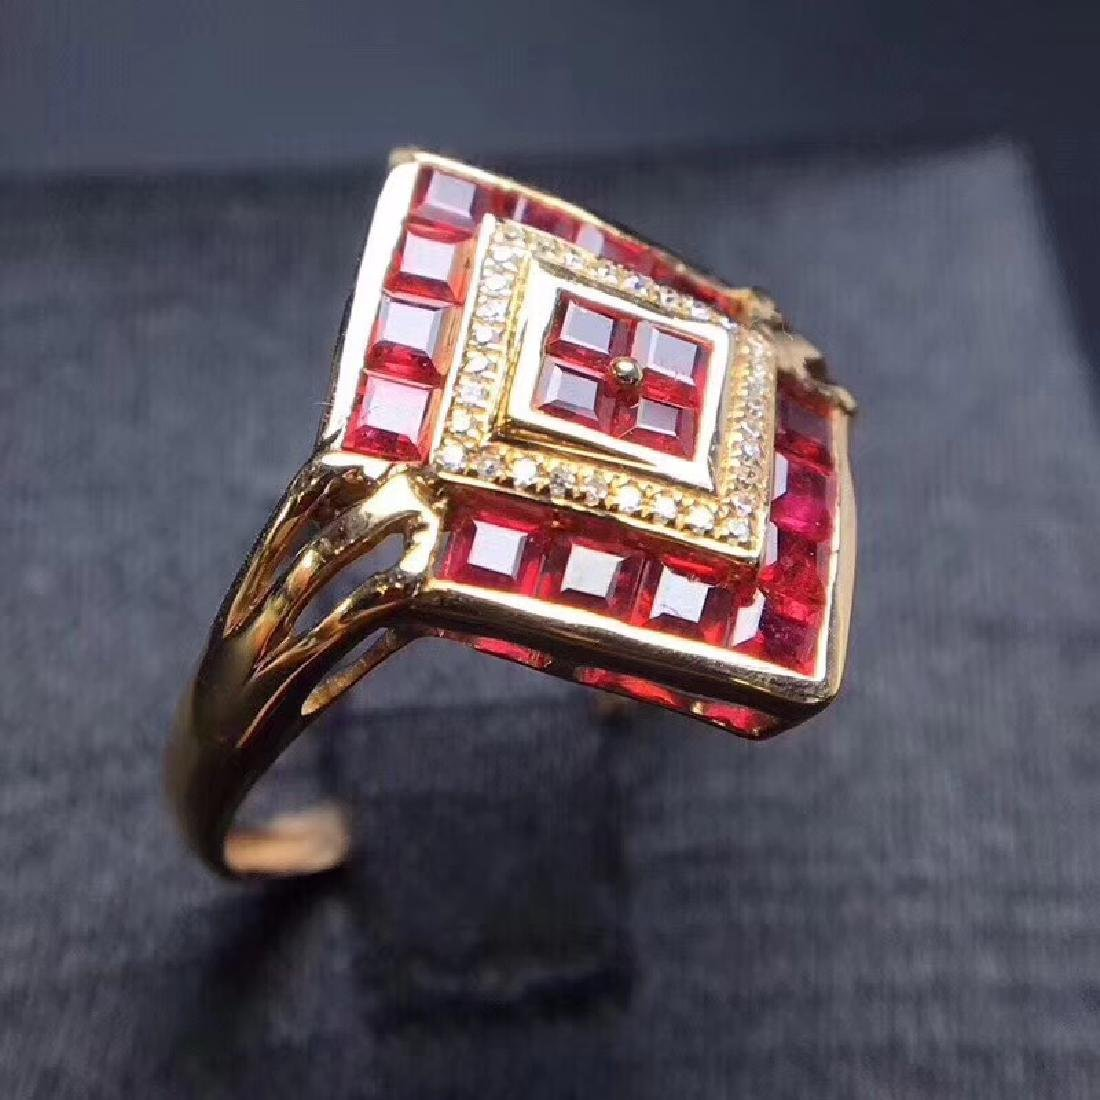 2.34 CTW Ruby & VS Diamond Ring 18K - 4